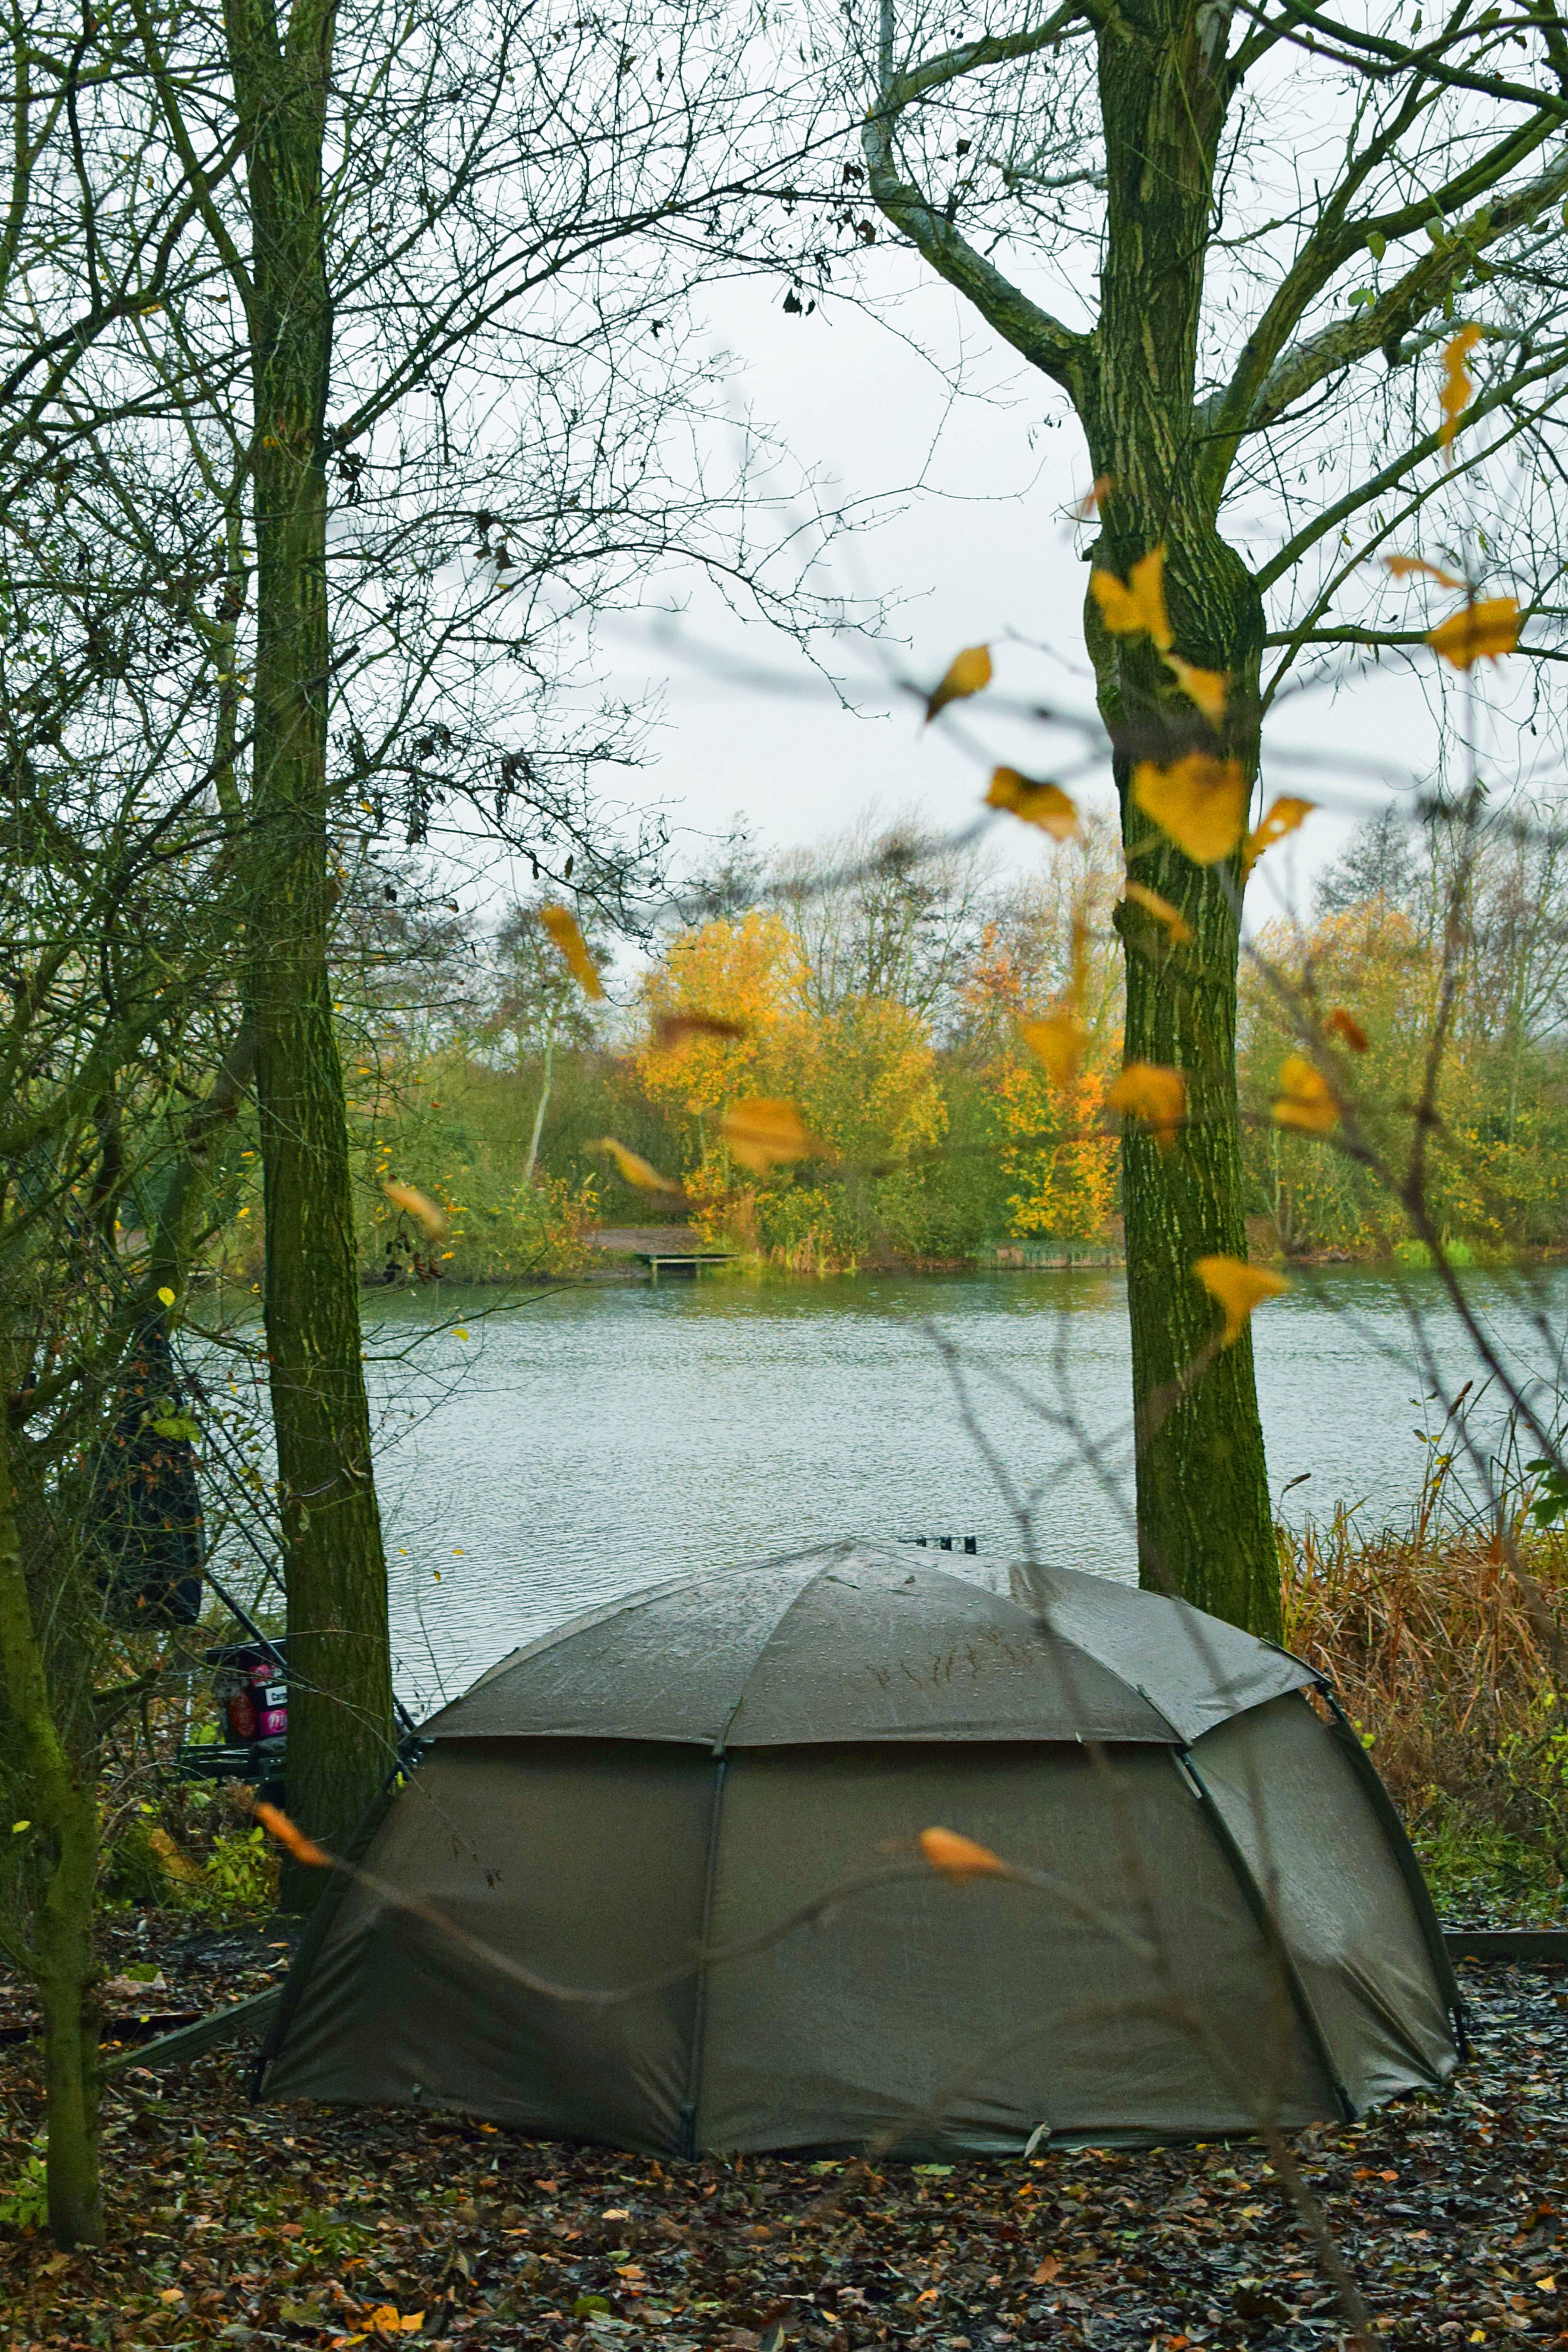 Peg 6 was to be my home for the weekend